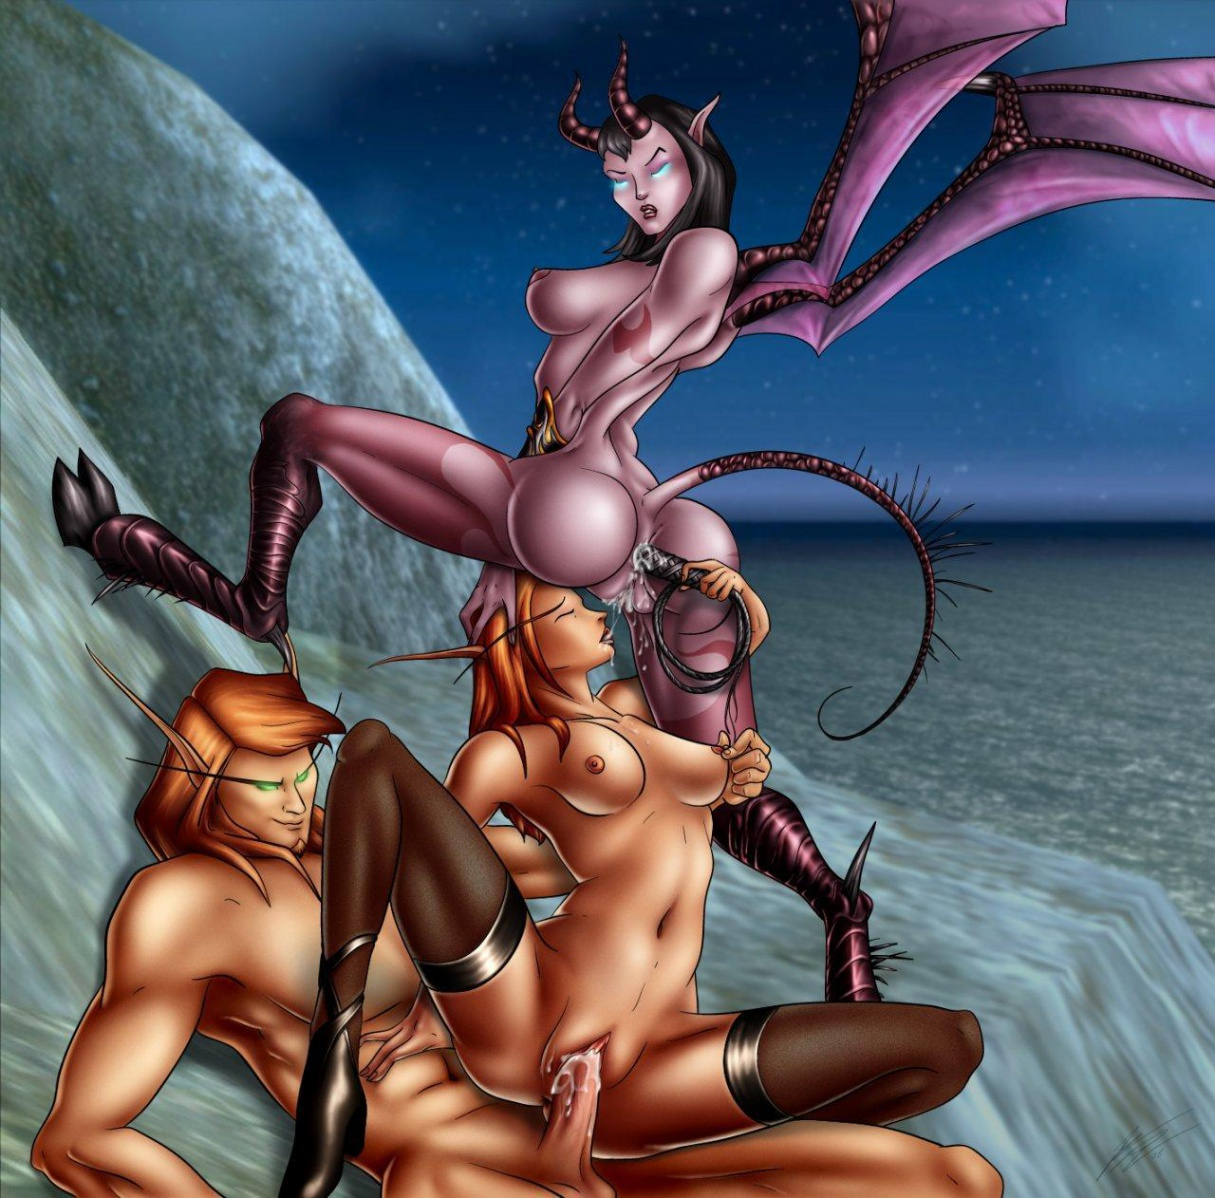 Warcraft pic hentia nude streaming